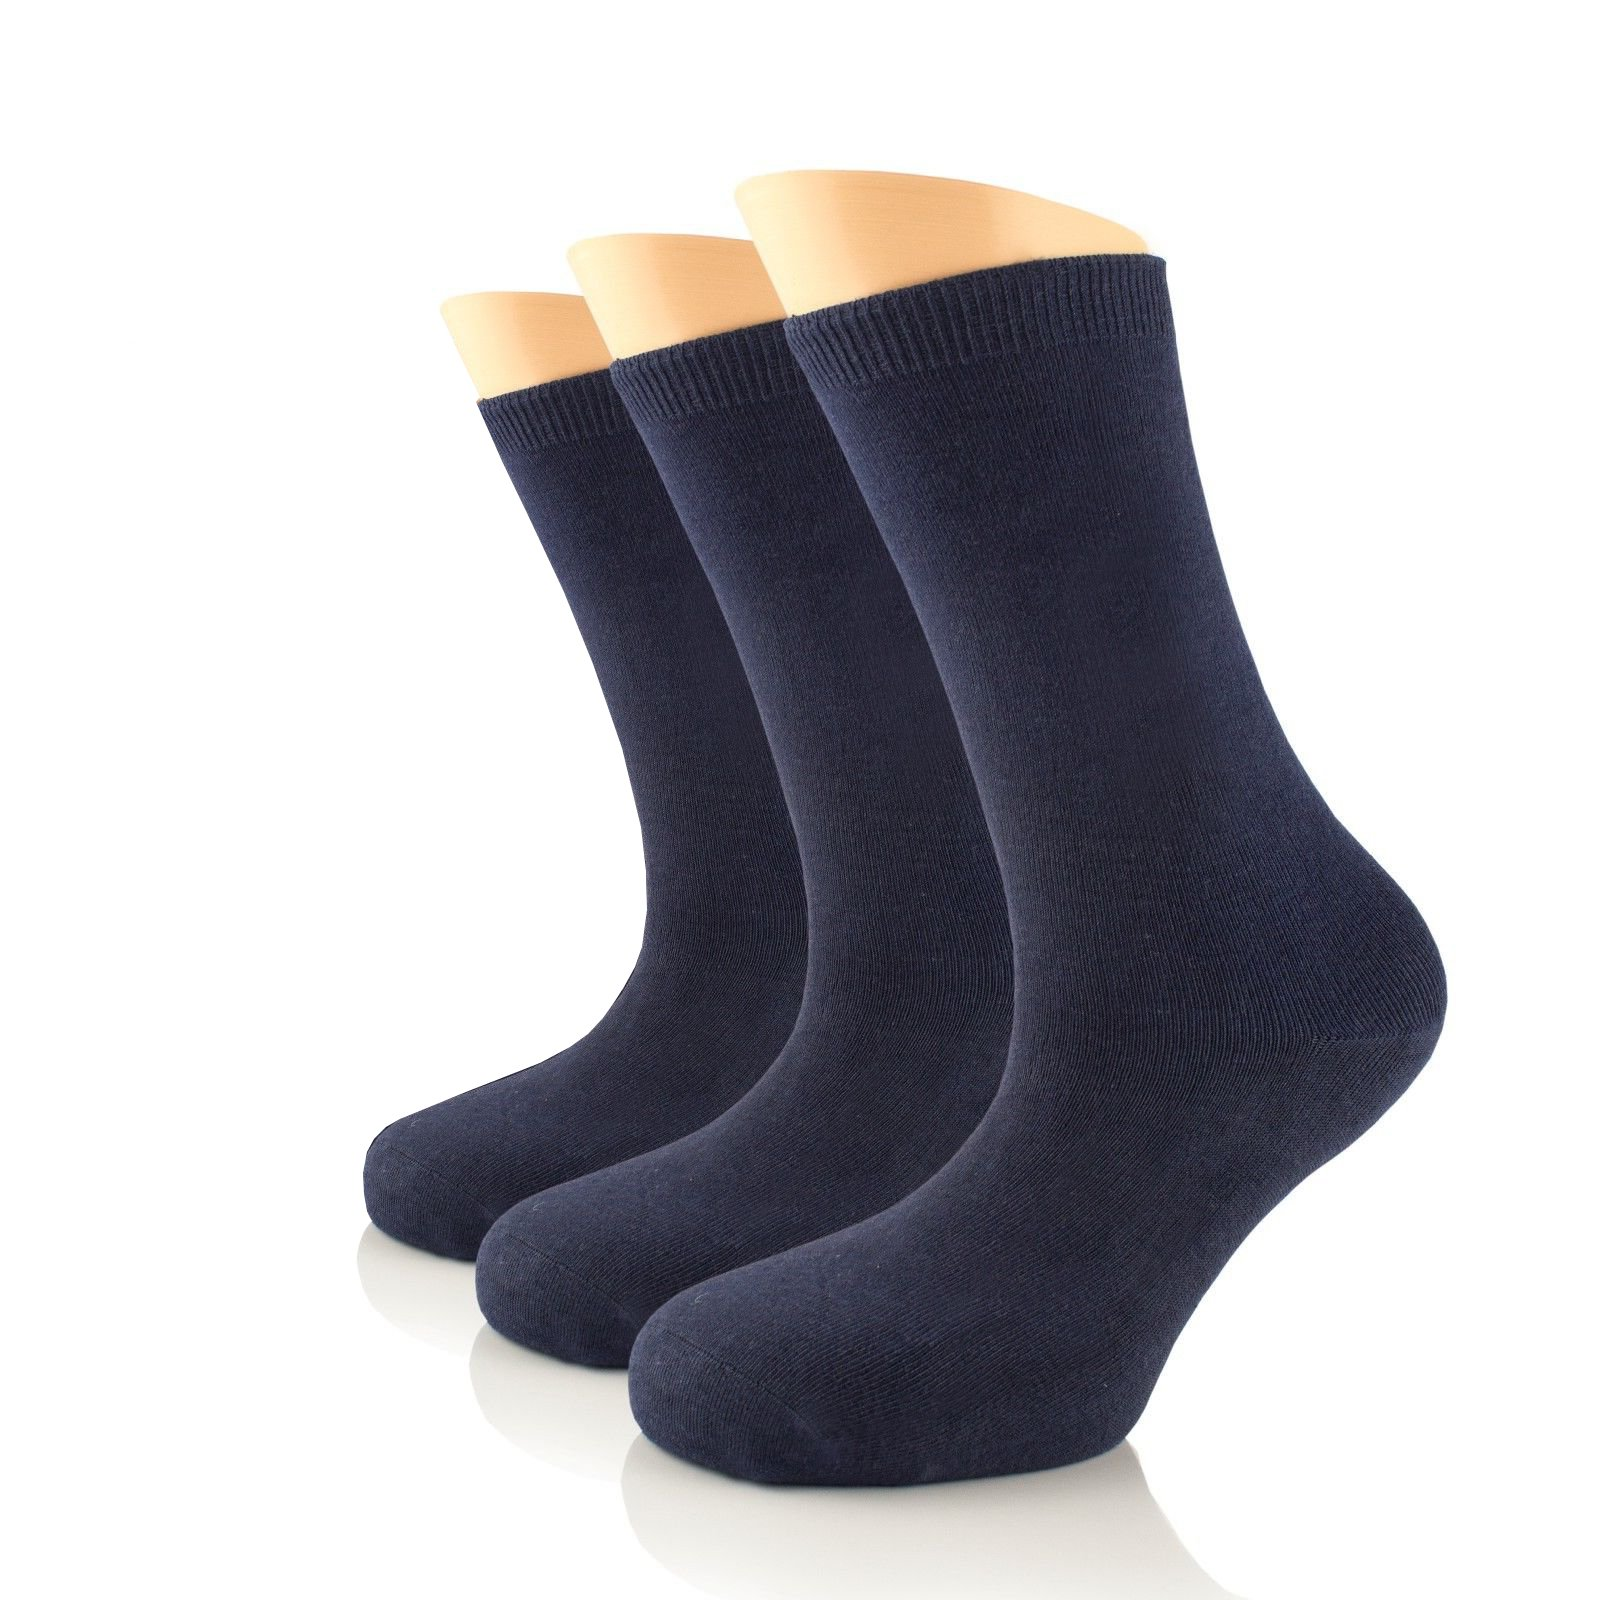 Women's Dress Crew Socks Bamboo Business Casual Comfort Socks SHOE SIZE : 6-9 & 9-12 (3 Pairs) (9-12, Navy (3 Pairs))